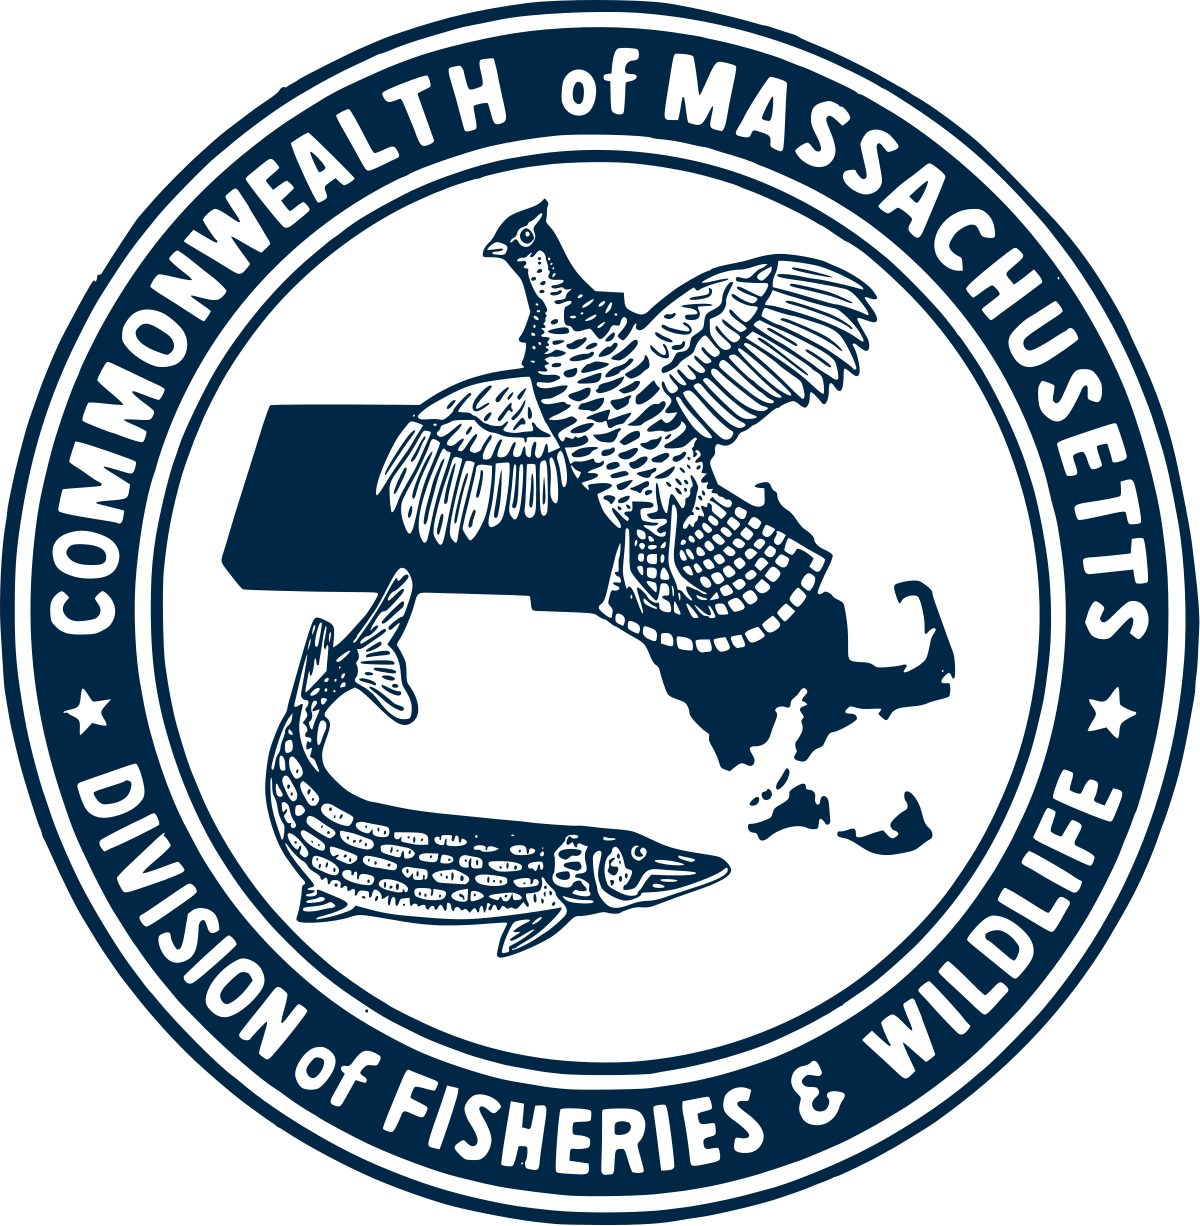 Division of fisheries and. Clipart lake habitat pond